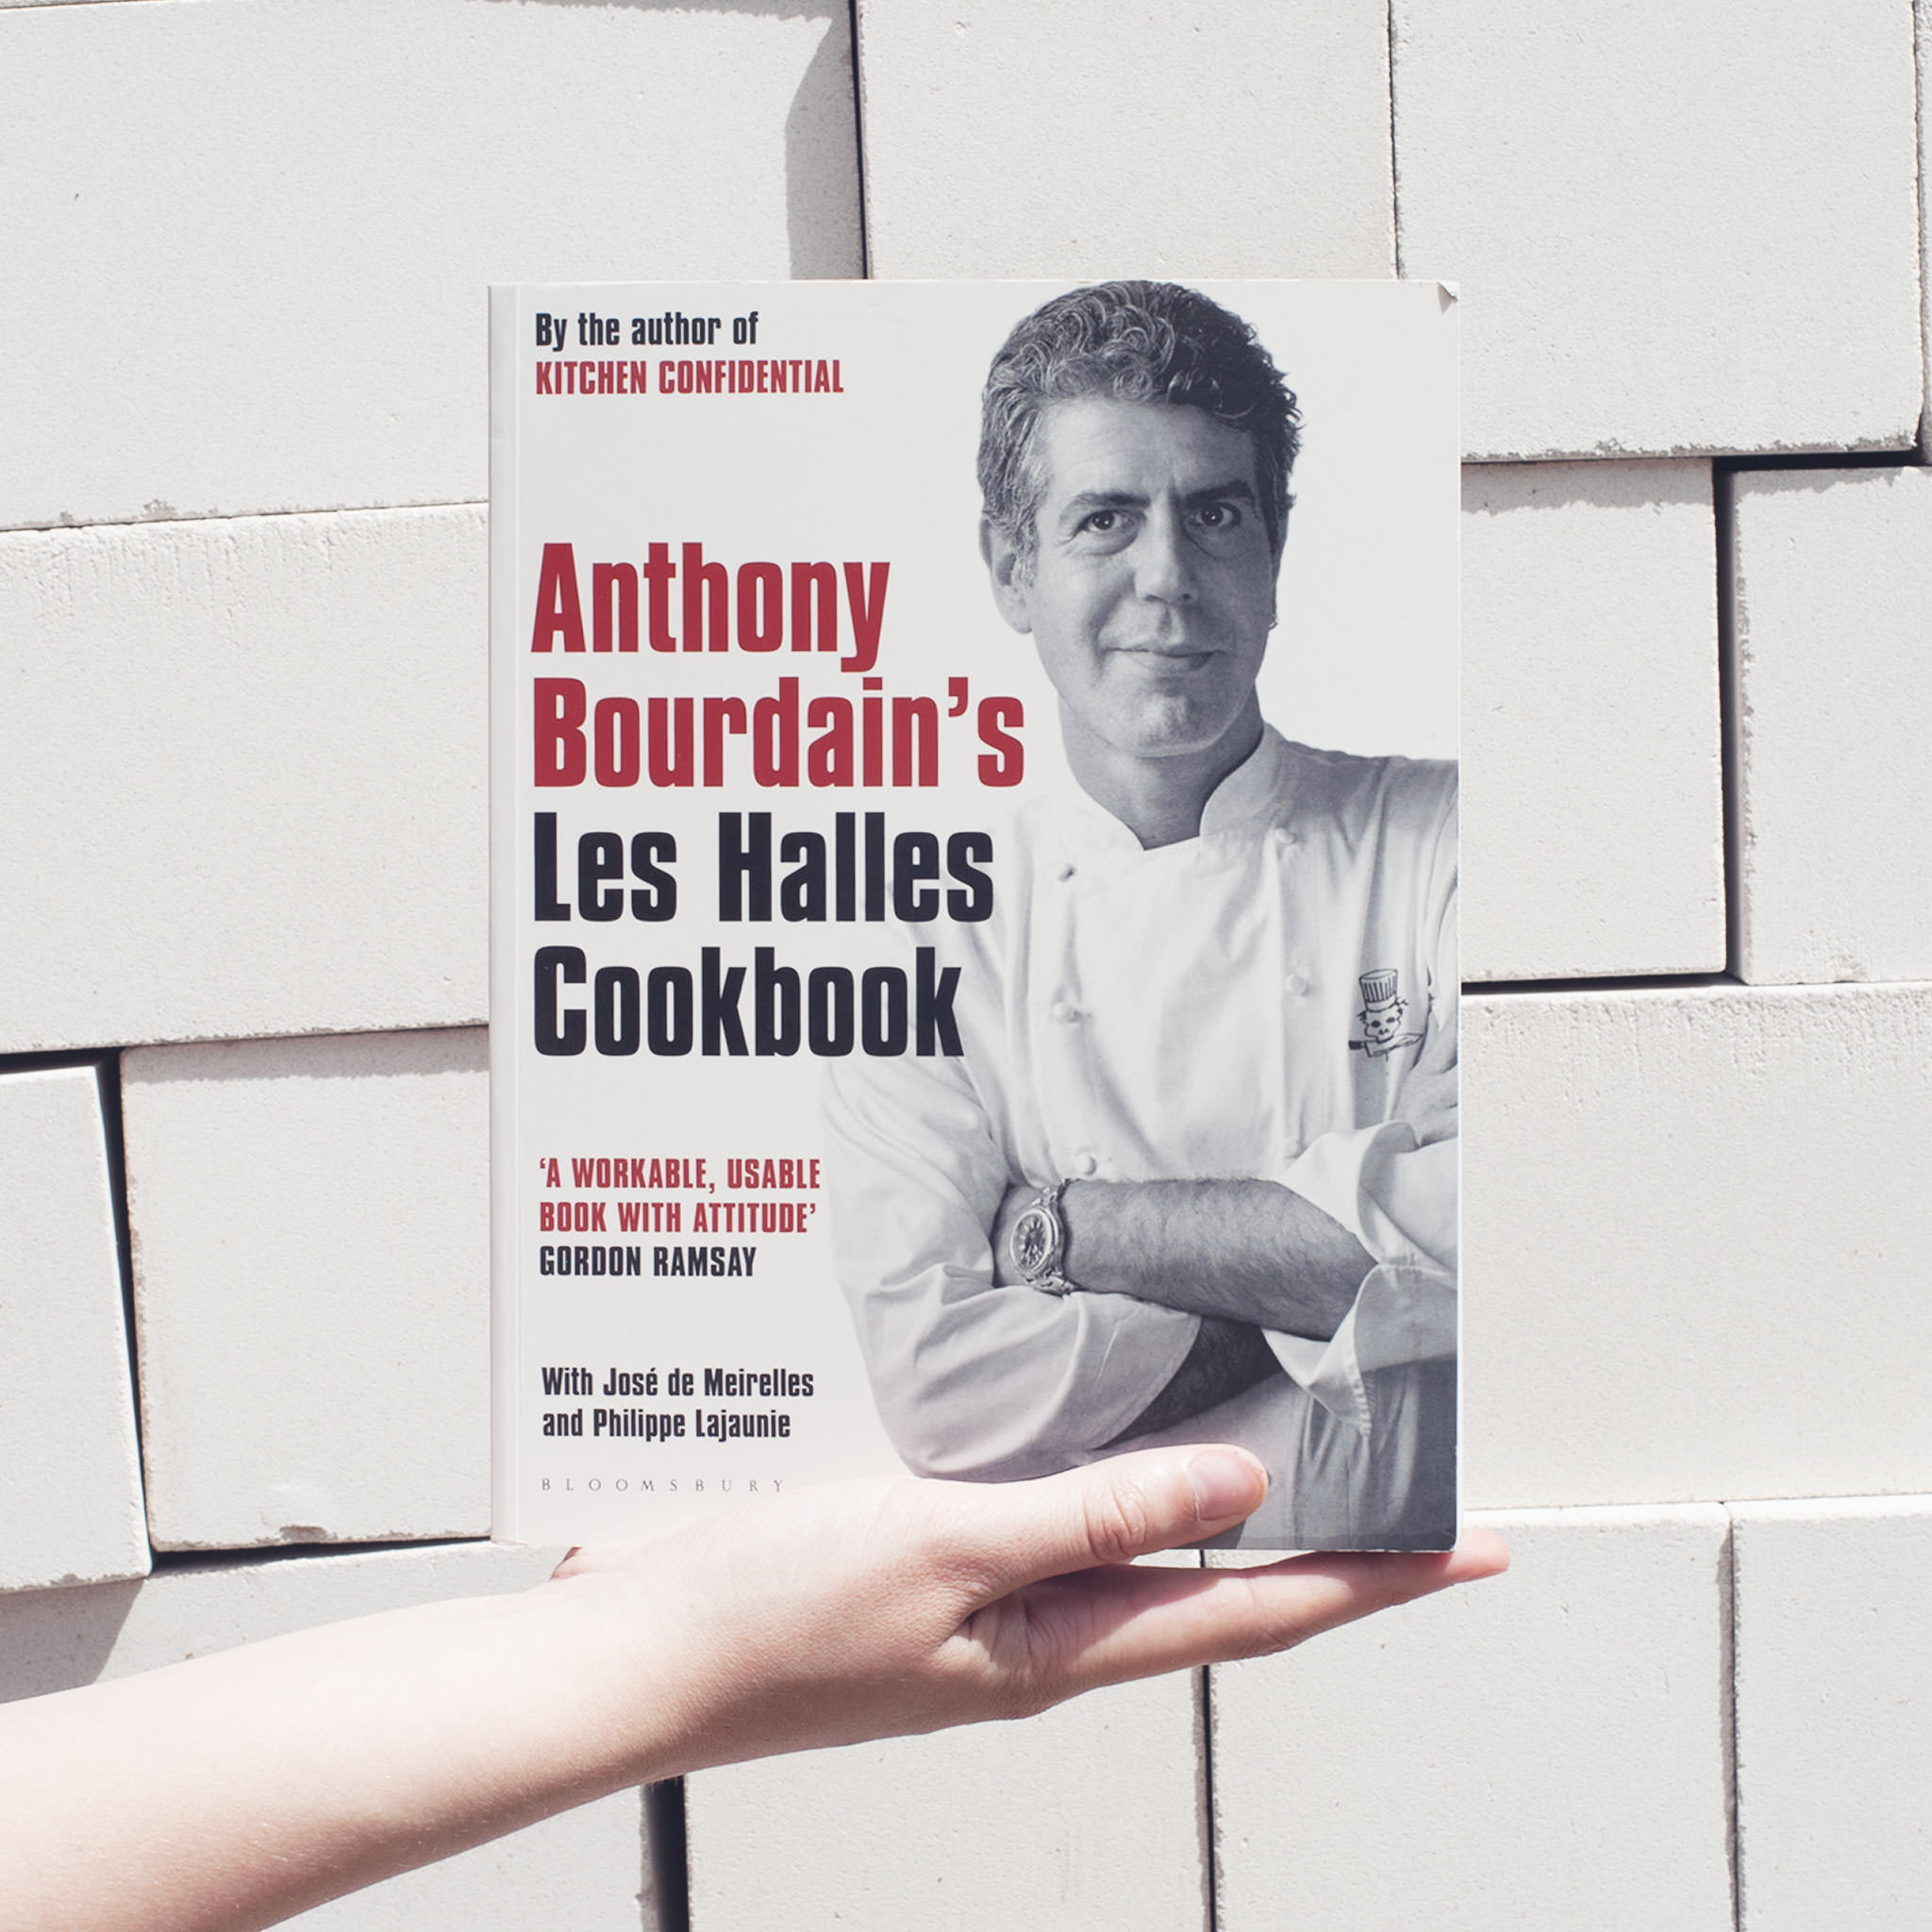 5 lessons we learned from anthony bourdain s les halles cookbook stories kitchen stories. Black Bedroom Furniture Sets. Home Design Ideas